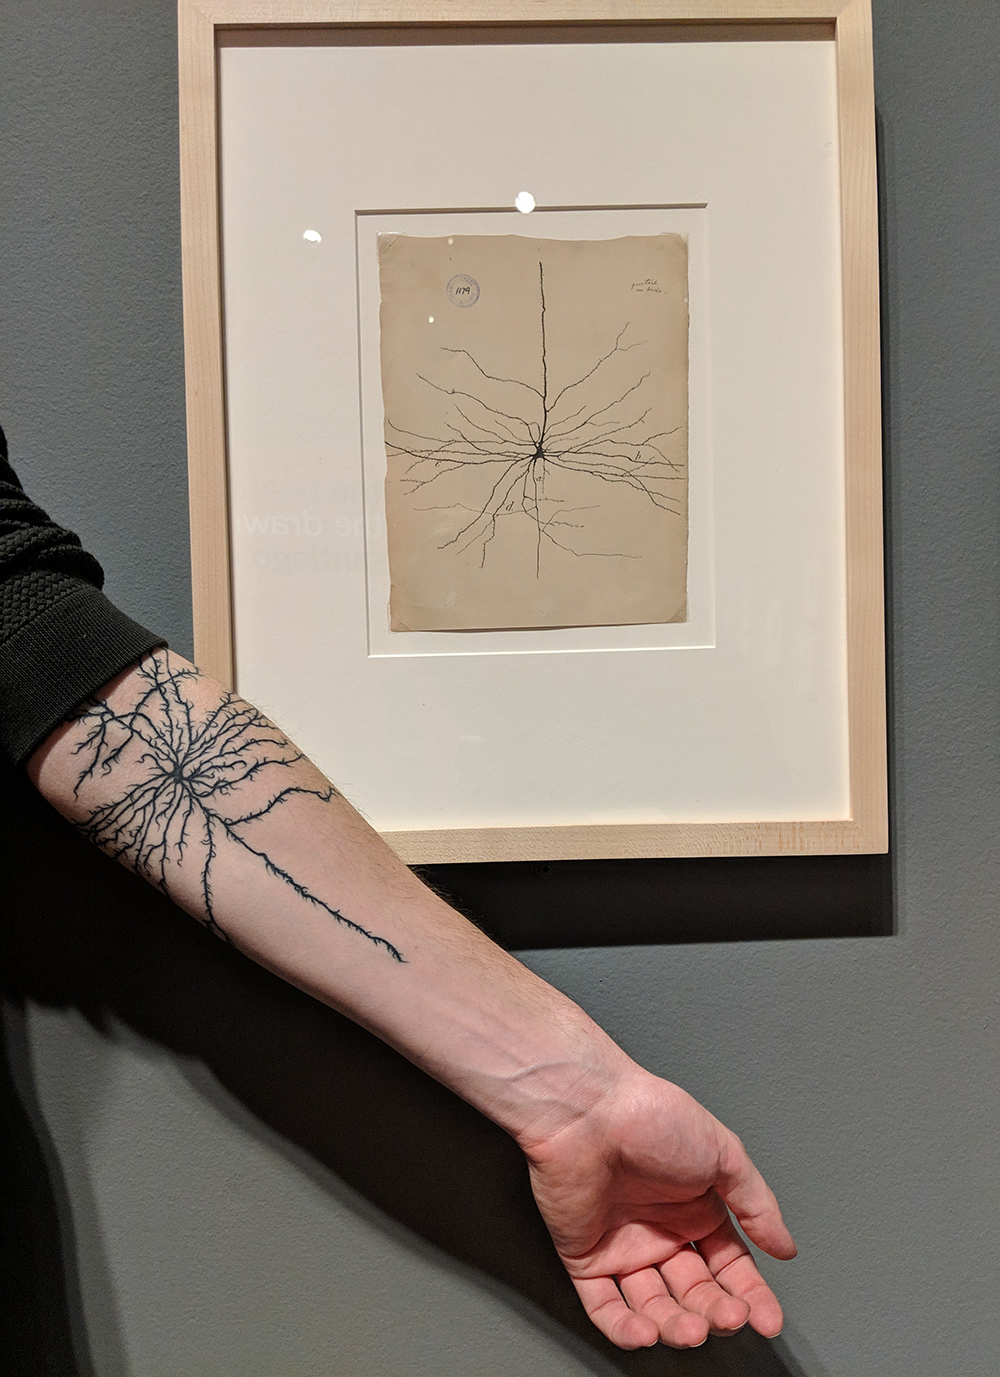 a person holds their arm out to show a tattoo on their forearm of a neuron, while standing in front of a drawing of the same neruron